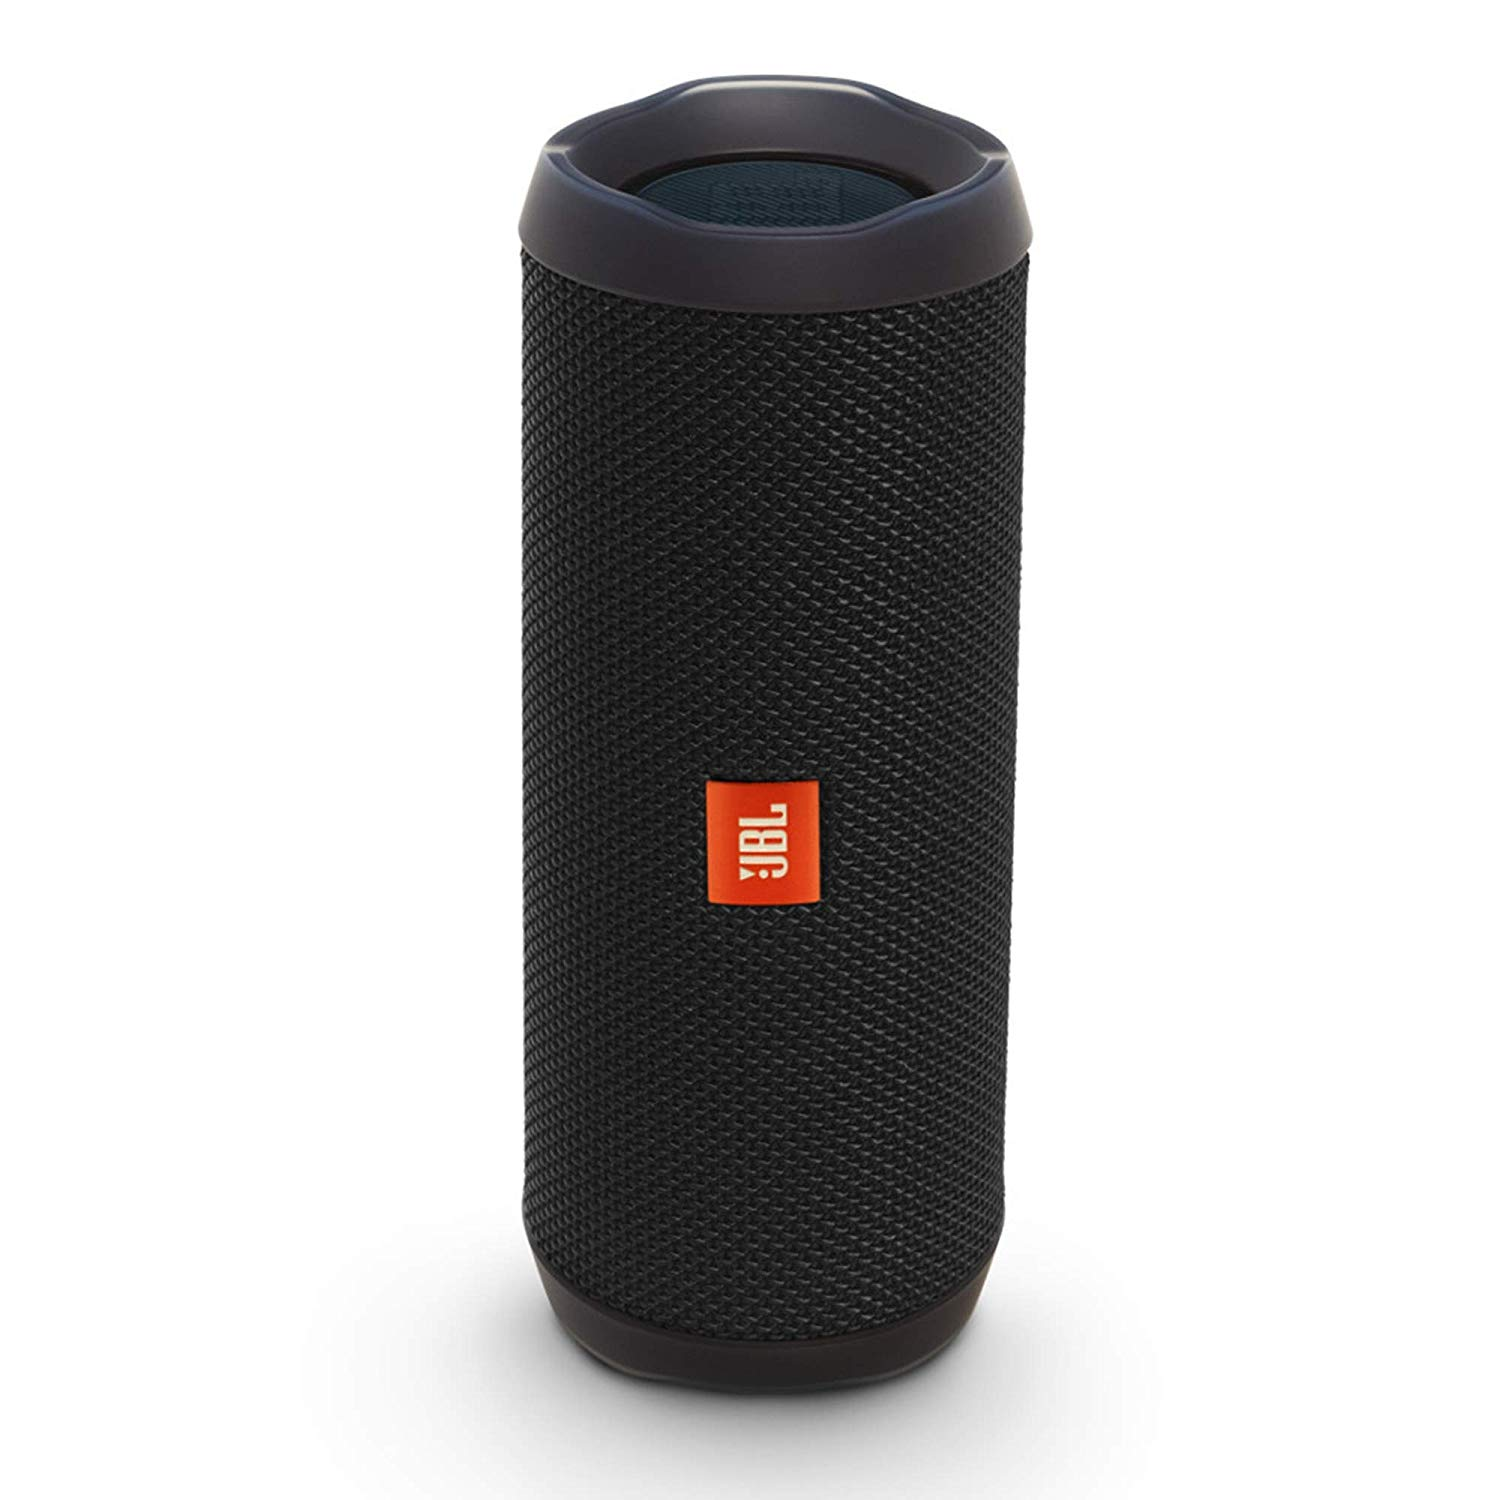 JBL portable bluetooth stereo speaker for him